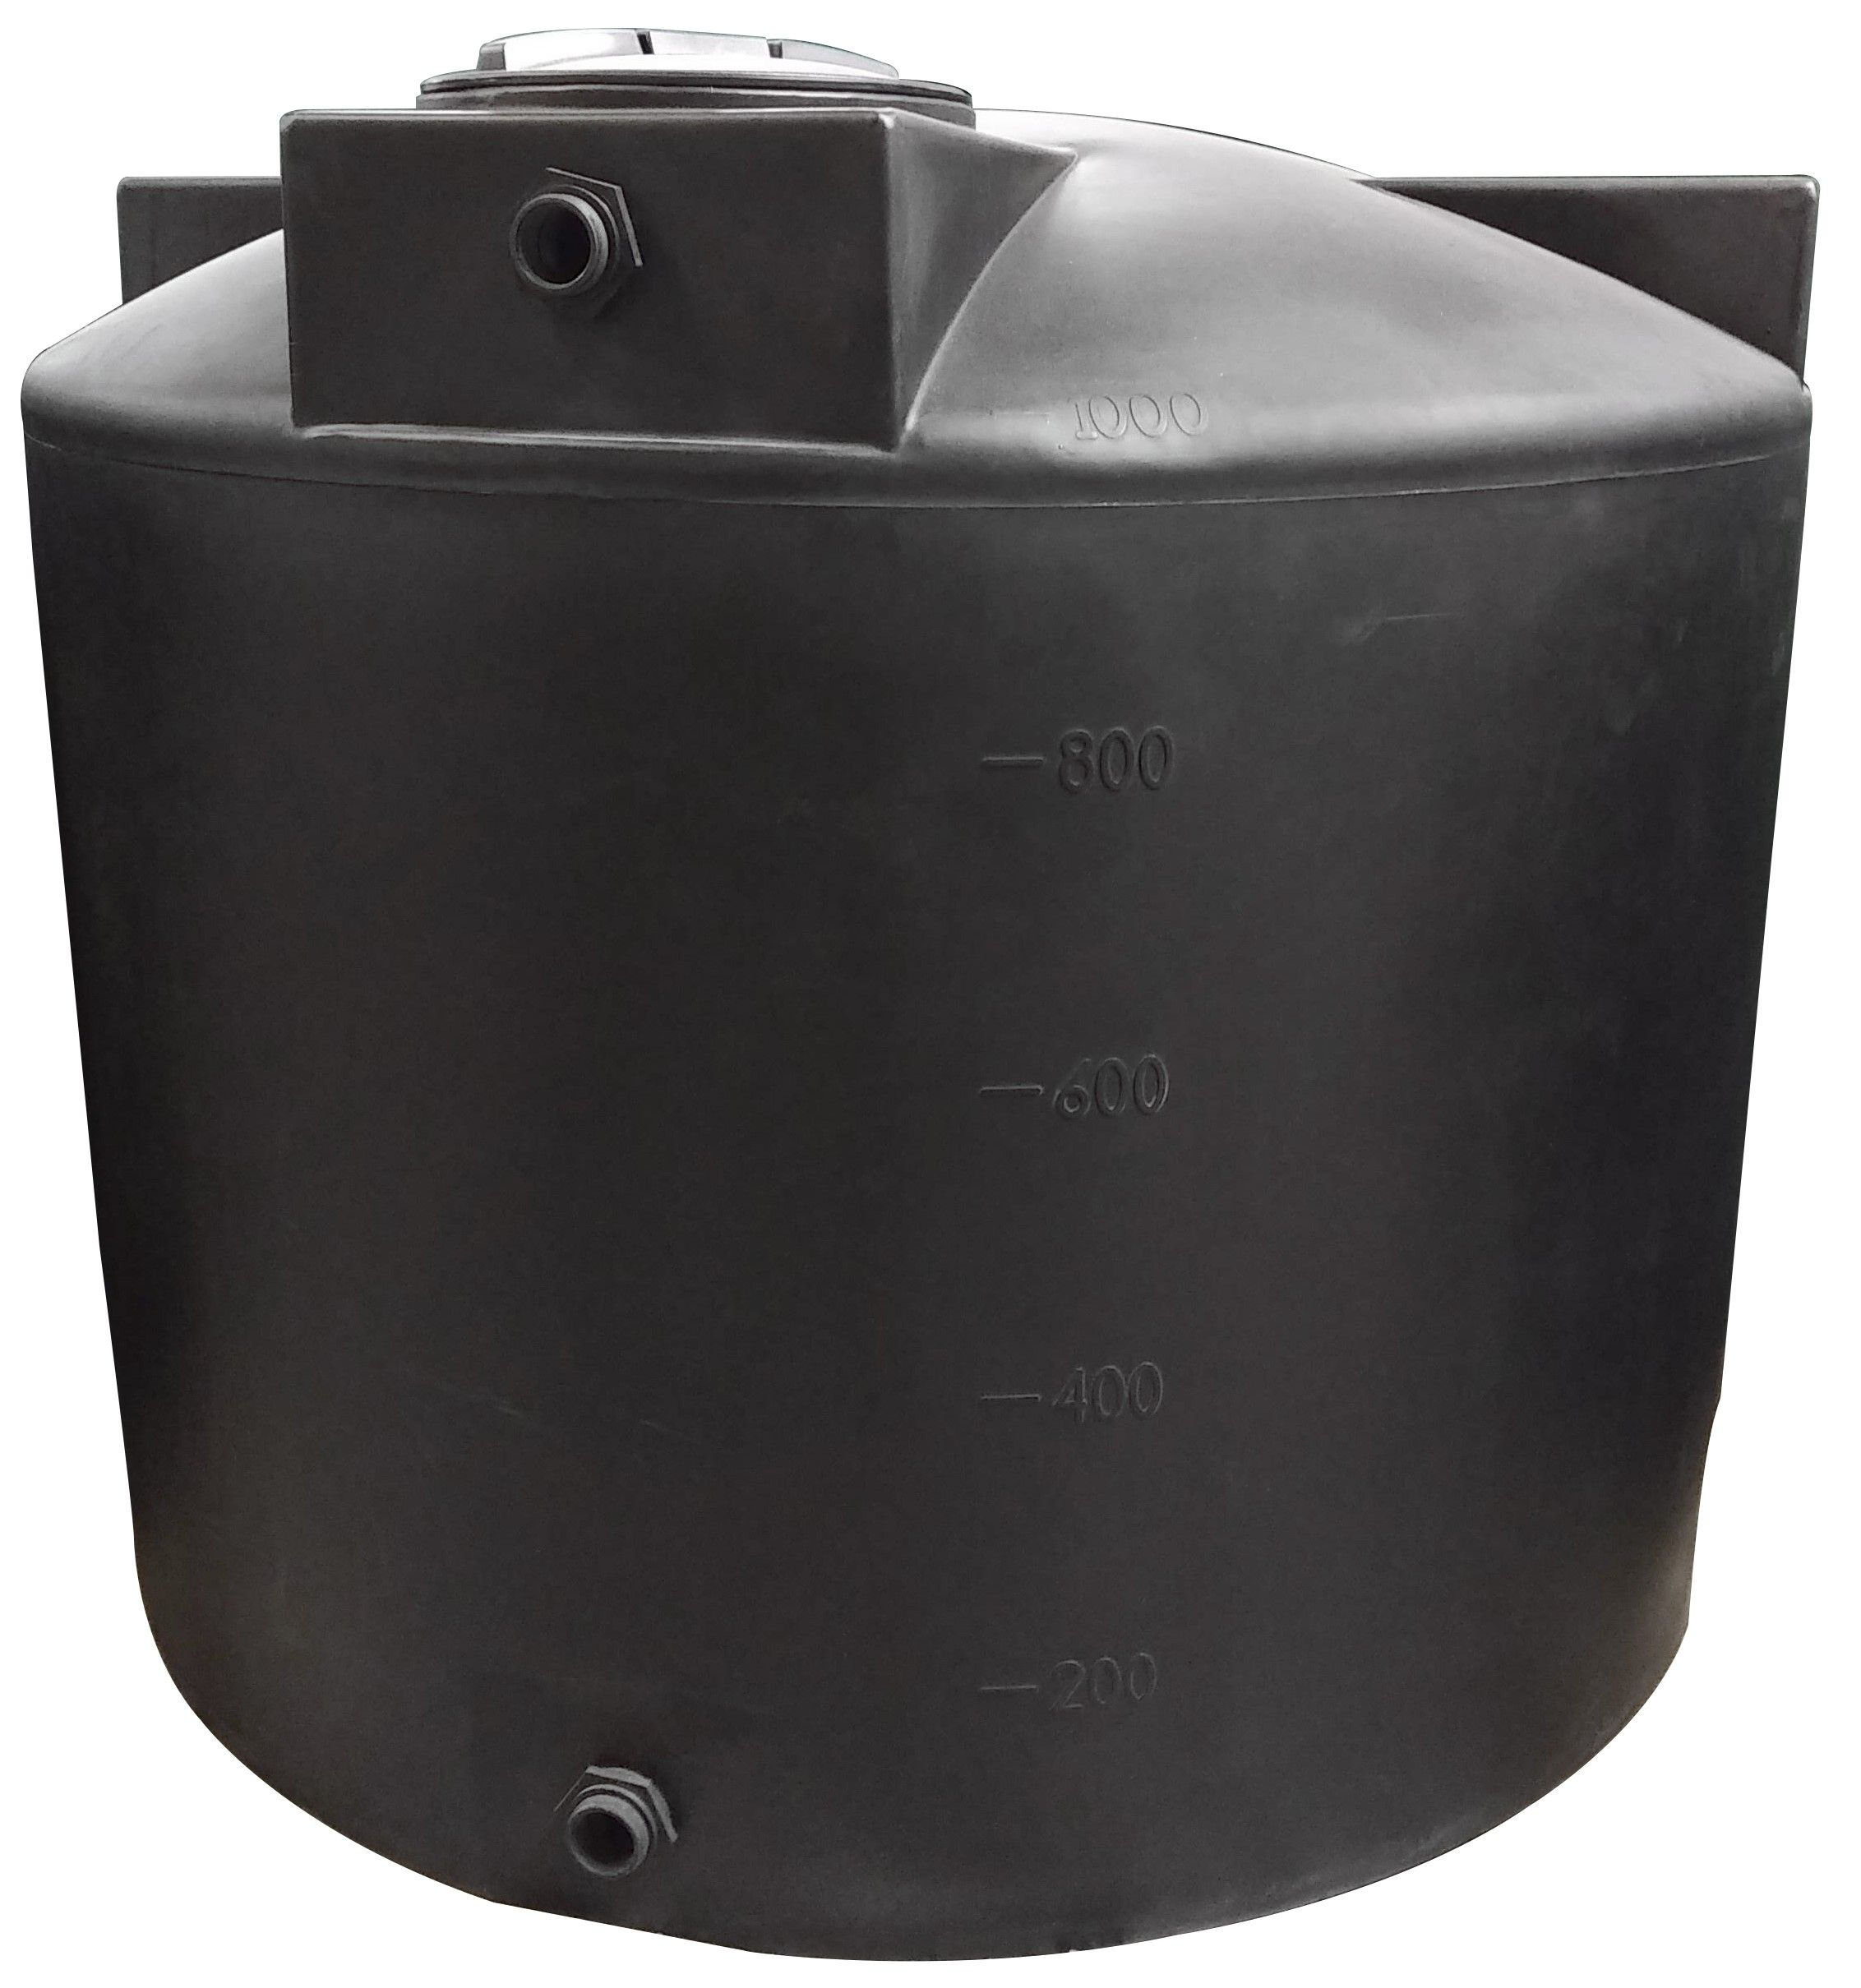 1000 Gallon Water Storage Tank Plastic Water Tank Poly Tank Potable Water Tank Black Poly Mart Water Storage Tanks Water Storage Storage Tank